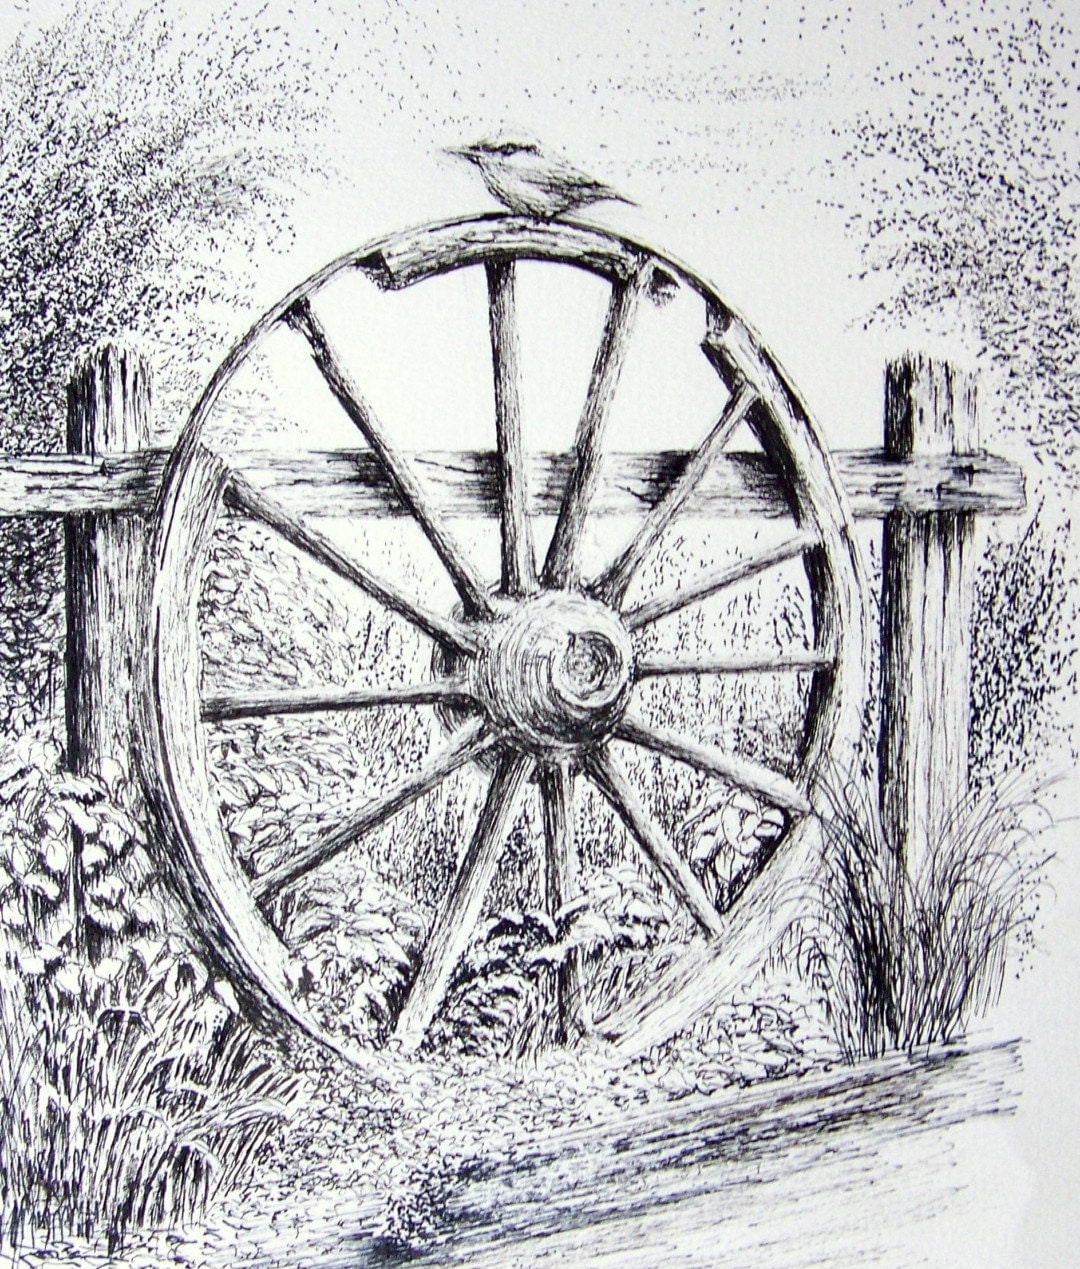 Old Wagon Wheel Graphite Pencil Drawing. Print from an